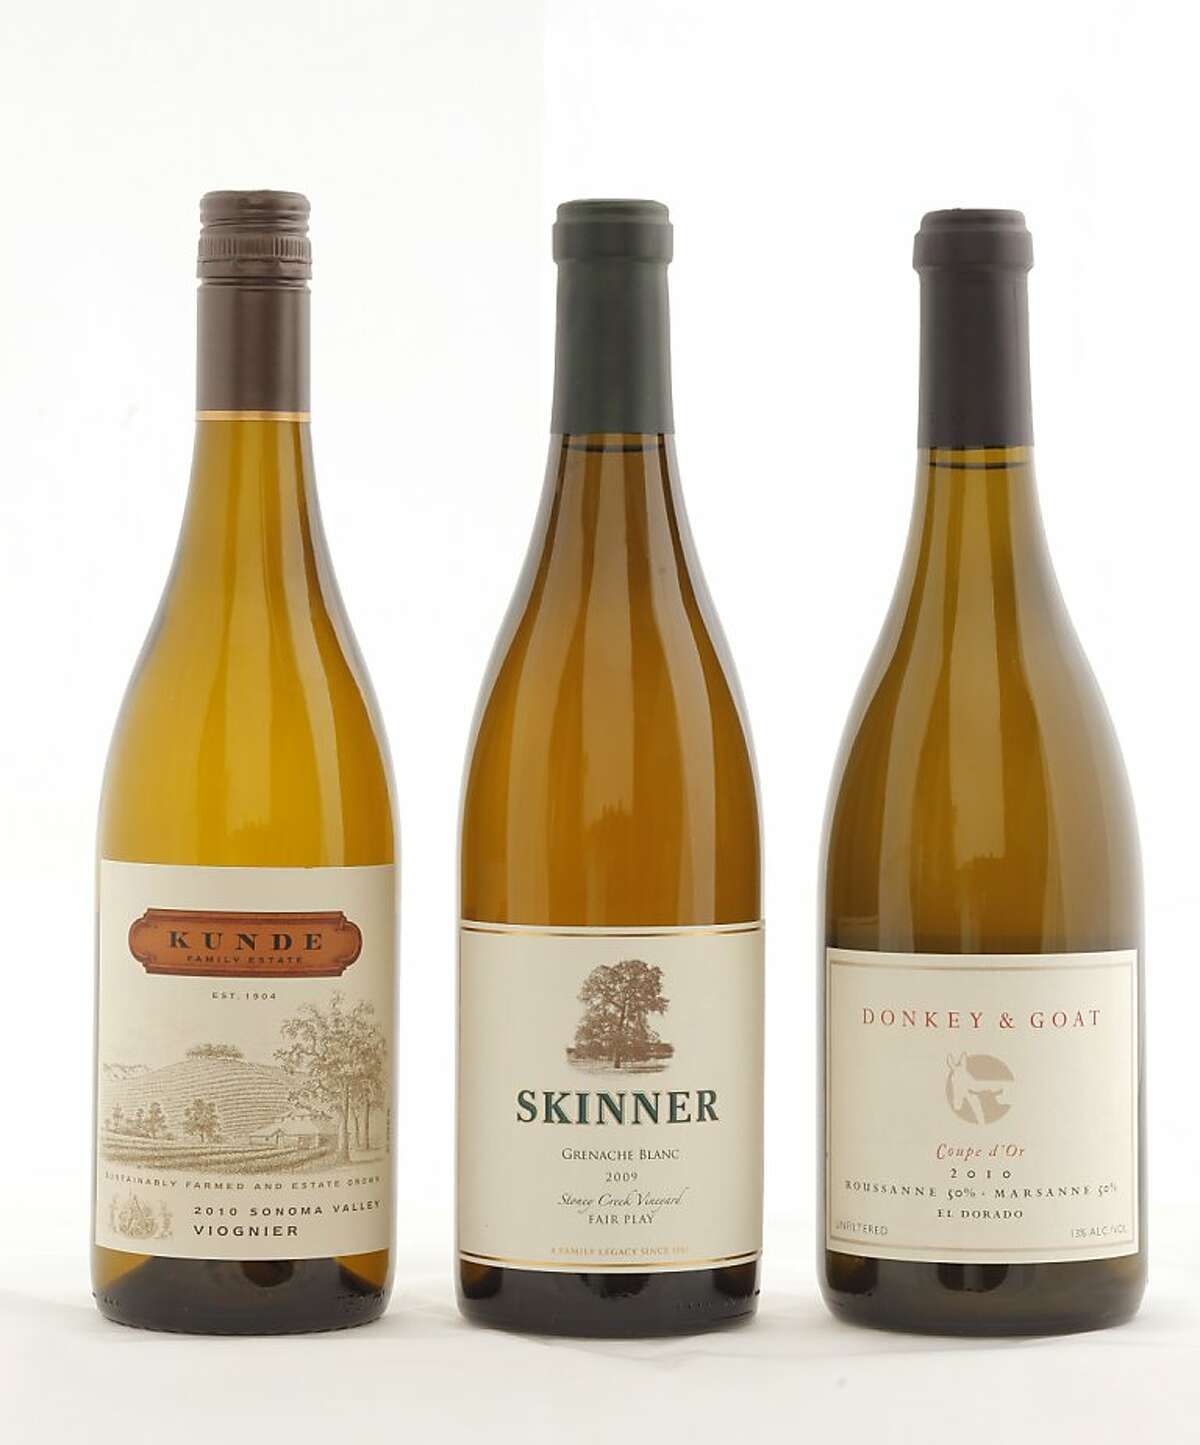 Left-right: 2010 Kunde Family Estate Sonoma Valley Viognier 2009 Skinner Stoney Creek Vineyard Fair Play Grenache Blanc 2010 Donkey & Goat Coupe d'Or El Dorado Roussanne-Marsanne as seen in San Francisco, California, on November 9, 2011. Ran on: 11-20-2011 Photo caption Dummy text goes here. Dummy text goes here. Dummy text goes here. Dummy text goes here. Dummy text goes here. Dummy text goes here. Dummy text goes here. Dummy text goes here.###Photo: GRID20_kunde_skinner_donkey1320710400SFC###Live Caption:American Rhone-Style Whites, from left: 2010 Kunde Family Estate Sonoma Valley Viognier, 2009 Skinner Stoney Creek Vineyard Fair Play Grenache Blanc, 2010 Donkey & Goat Coupe d'Or El Dorado Roussanne-Marsanne###Caption History:Left-right: __2010 Kunde Family Estate Sonoma Valley Viognier__2009 Skinner Stoney Creek Vineyard Fair Play Grenache Blanc__2010 Donkey & Goat Coupe d'Or El Dorado Roussanne-Marsanne__as seen in San Francisco, California, on November 9, 2011.###Notes:###Special Instructions:MANDATORY CREDIT FOR PHOTOG AND SF CHRONICLE-NO SALES-MAGS OUT-INTERNET__OUT-TV OUT Ran on: 11-20-2011 Photo caption Dummy text goes here. Dummy text goes here. Dummy text goes here. Dummy text goes here. Dummy text goes here. Dummy text goes here. Dummy text goes here. Dummy text goes here.###Photo: GRID20_kunde_skinner_donkey1320710400SFC###Live Caption:American Rhone-Style Whites, from left: 2010 Kunde Family Estate Sonoma Valley Viognier, 2009 Skinner Stoney Creek Vineyard Fair Play Grenache Blanc, 2010 Donkey & Goat Coupe d'Or El Dorado Roussanne-Marsanne###Caption History:Left-right: __2010 Kunde...